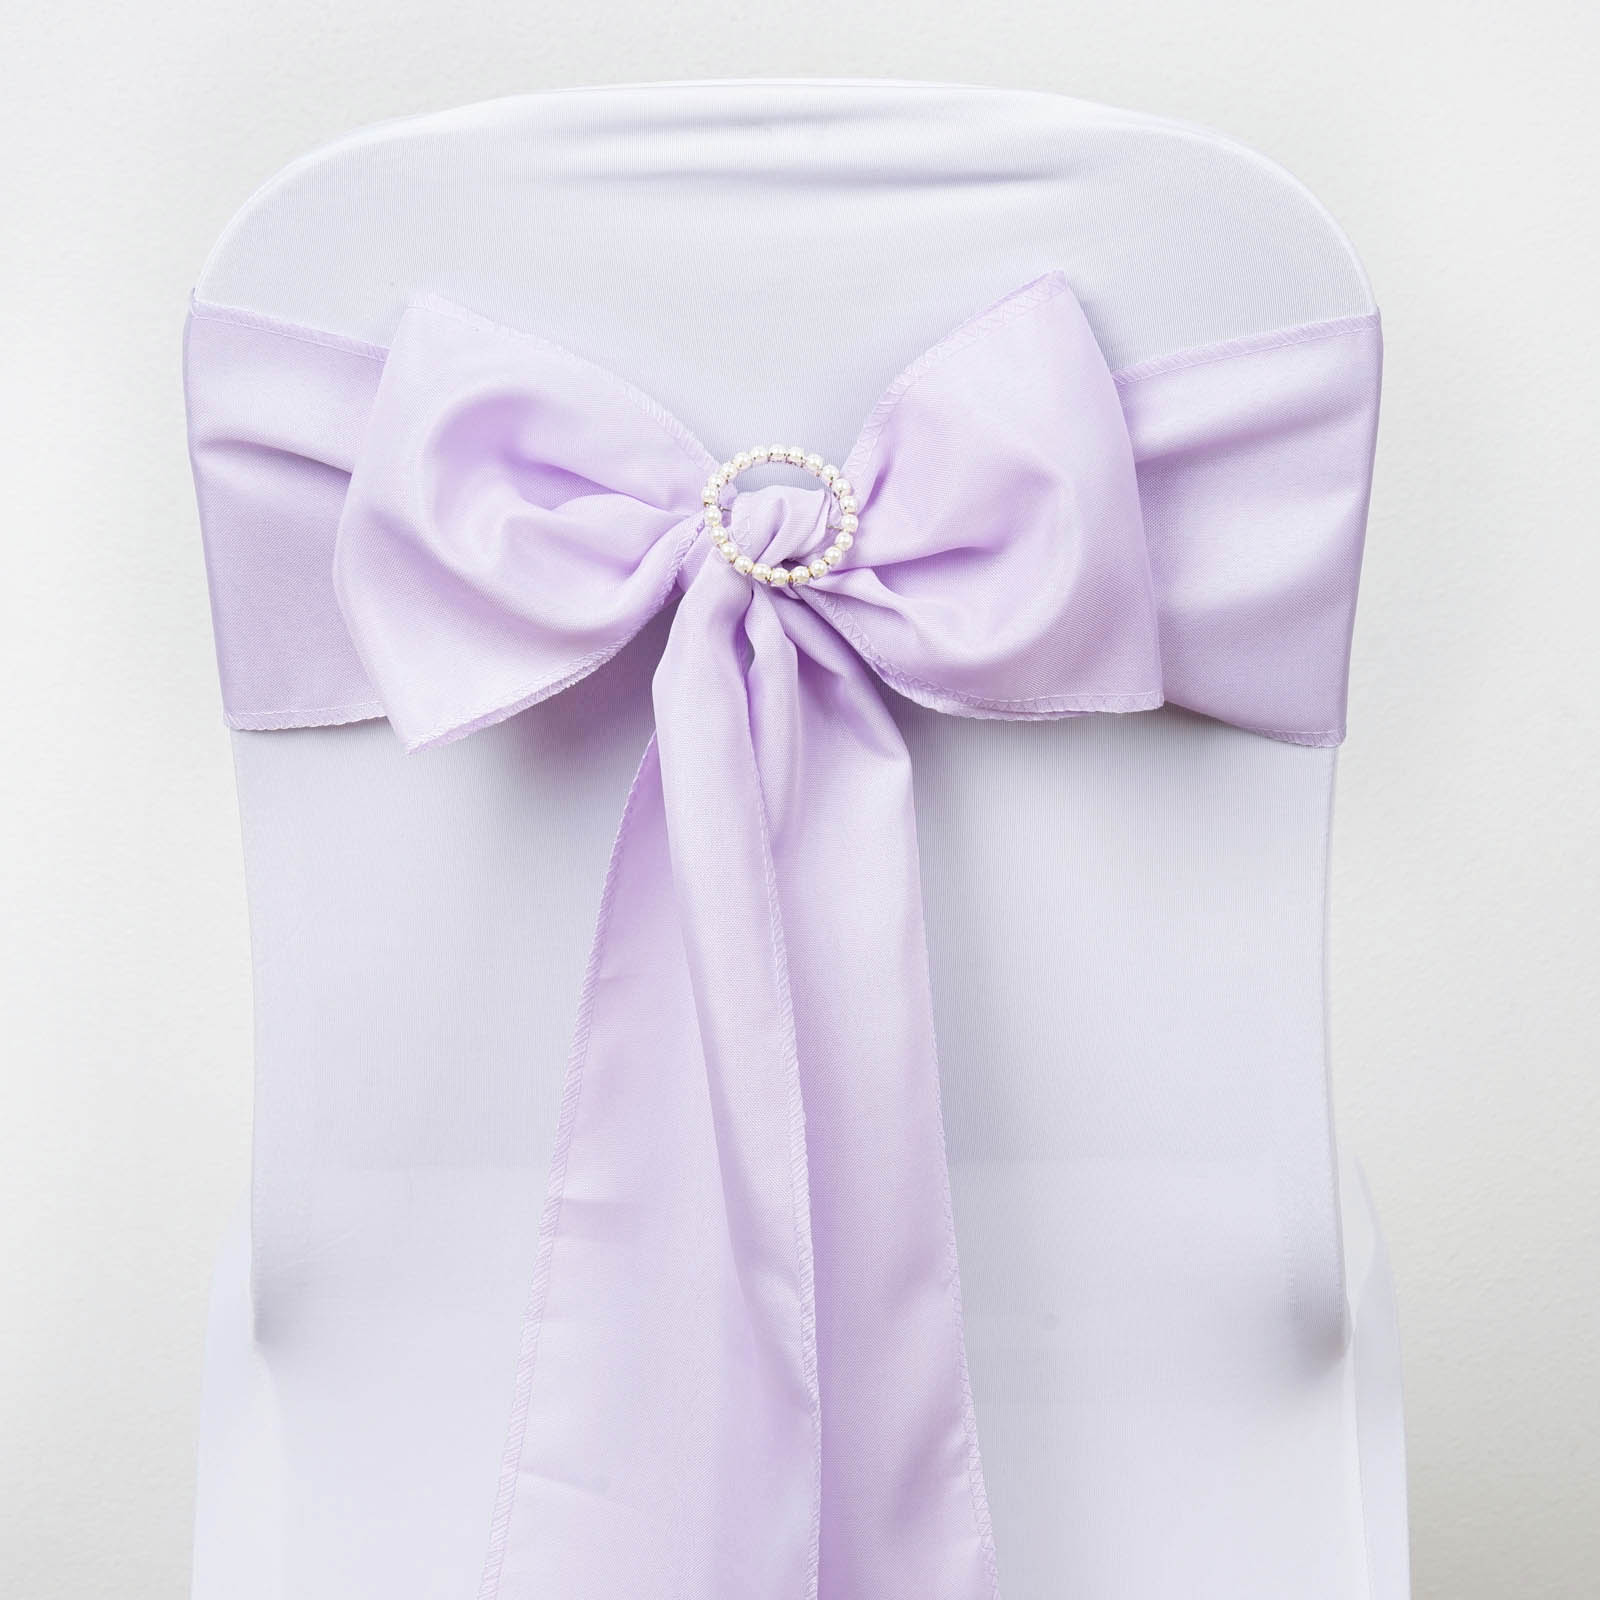 Polyester CHAIR SASHES Bows Ties Wedding Reception